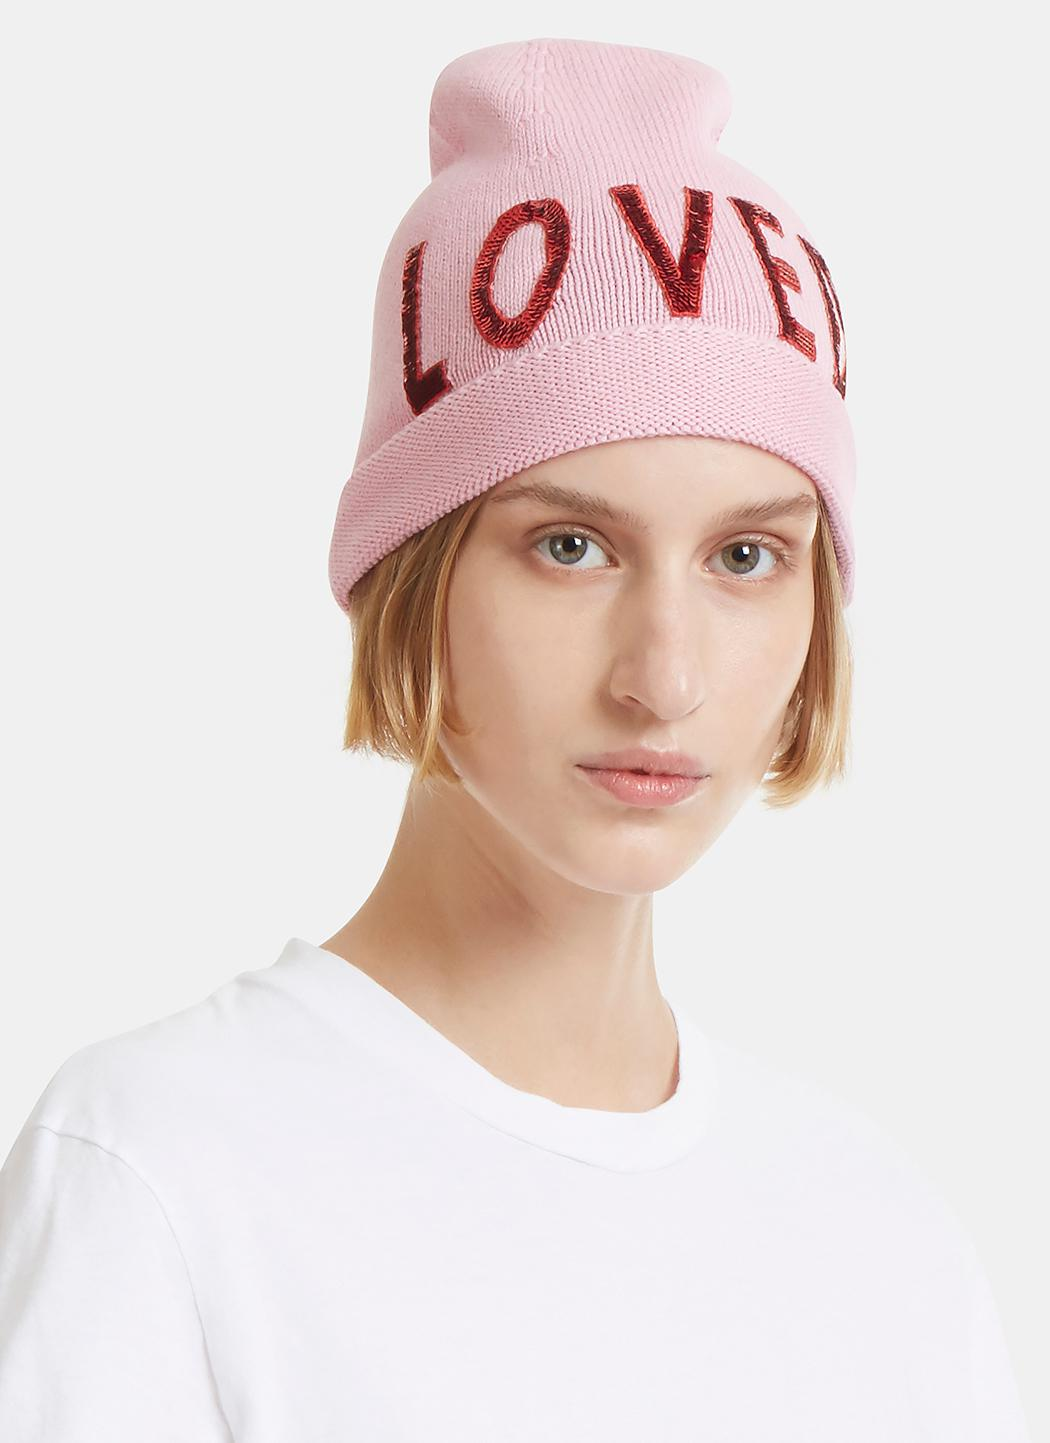 645fd4f858e22 Gucci Sequin Embroidered Loved Knit Hat In Pink in Pink - Lyst